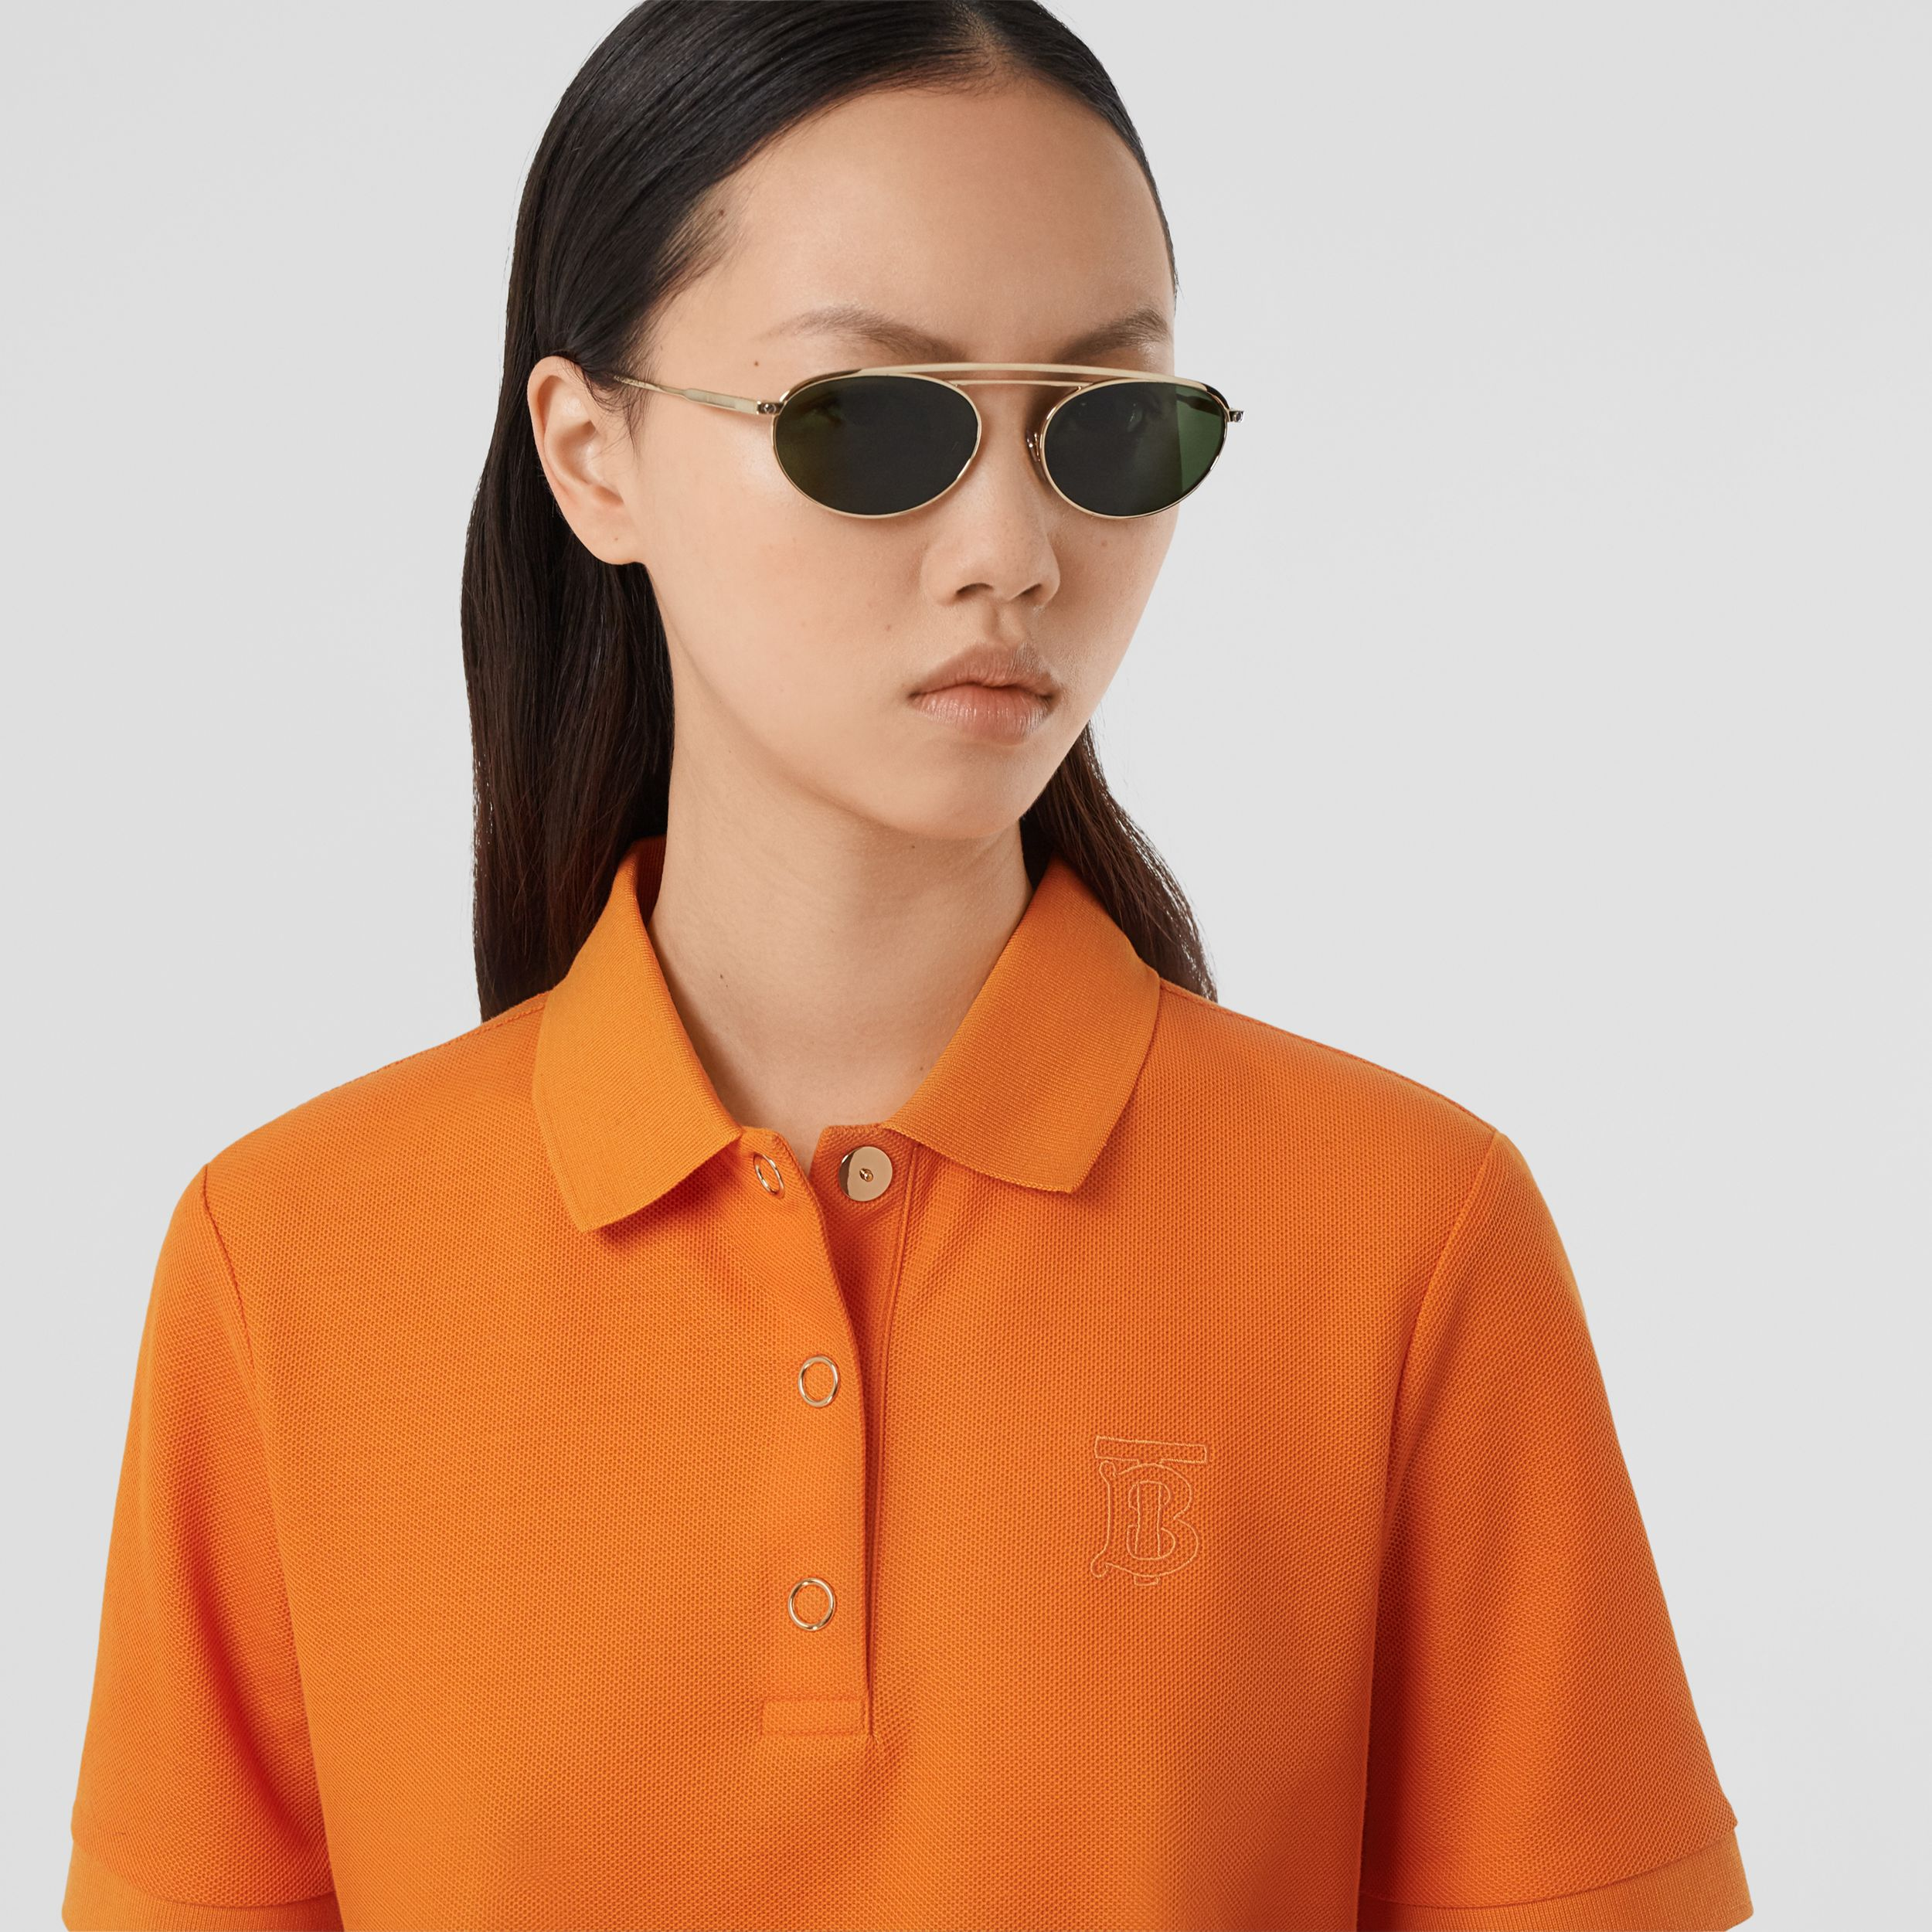 Monogram Motif Cotton Piqué Polo Shirt in Bright Orange - Women | Burberry - 2